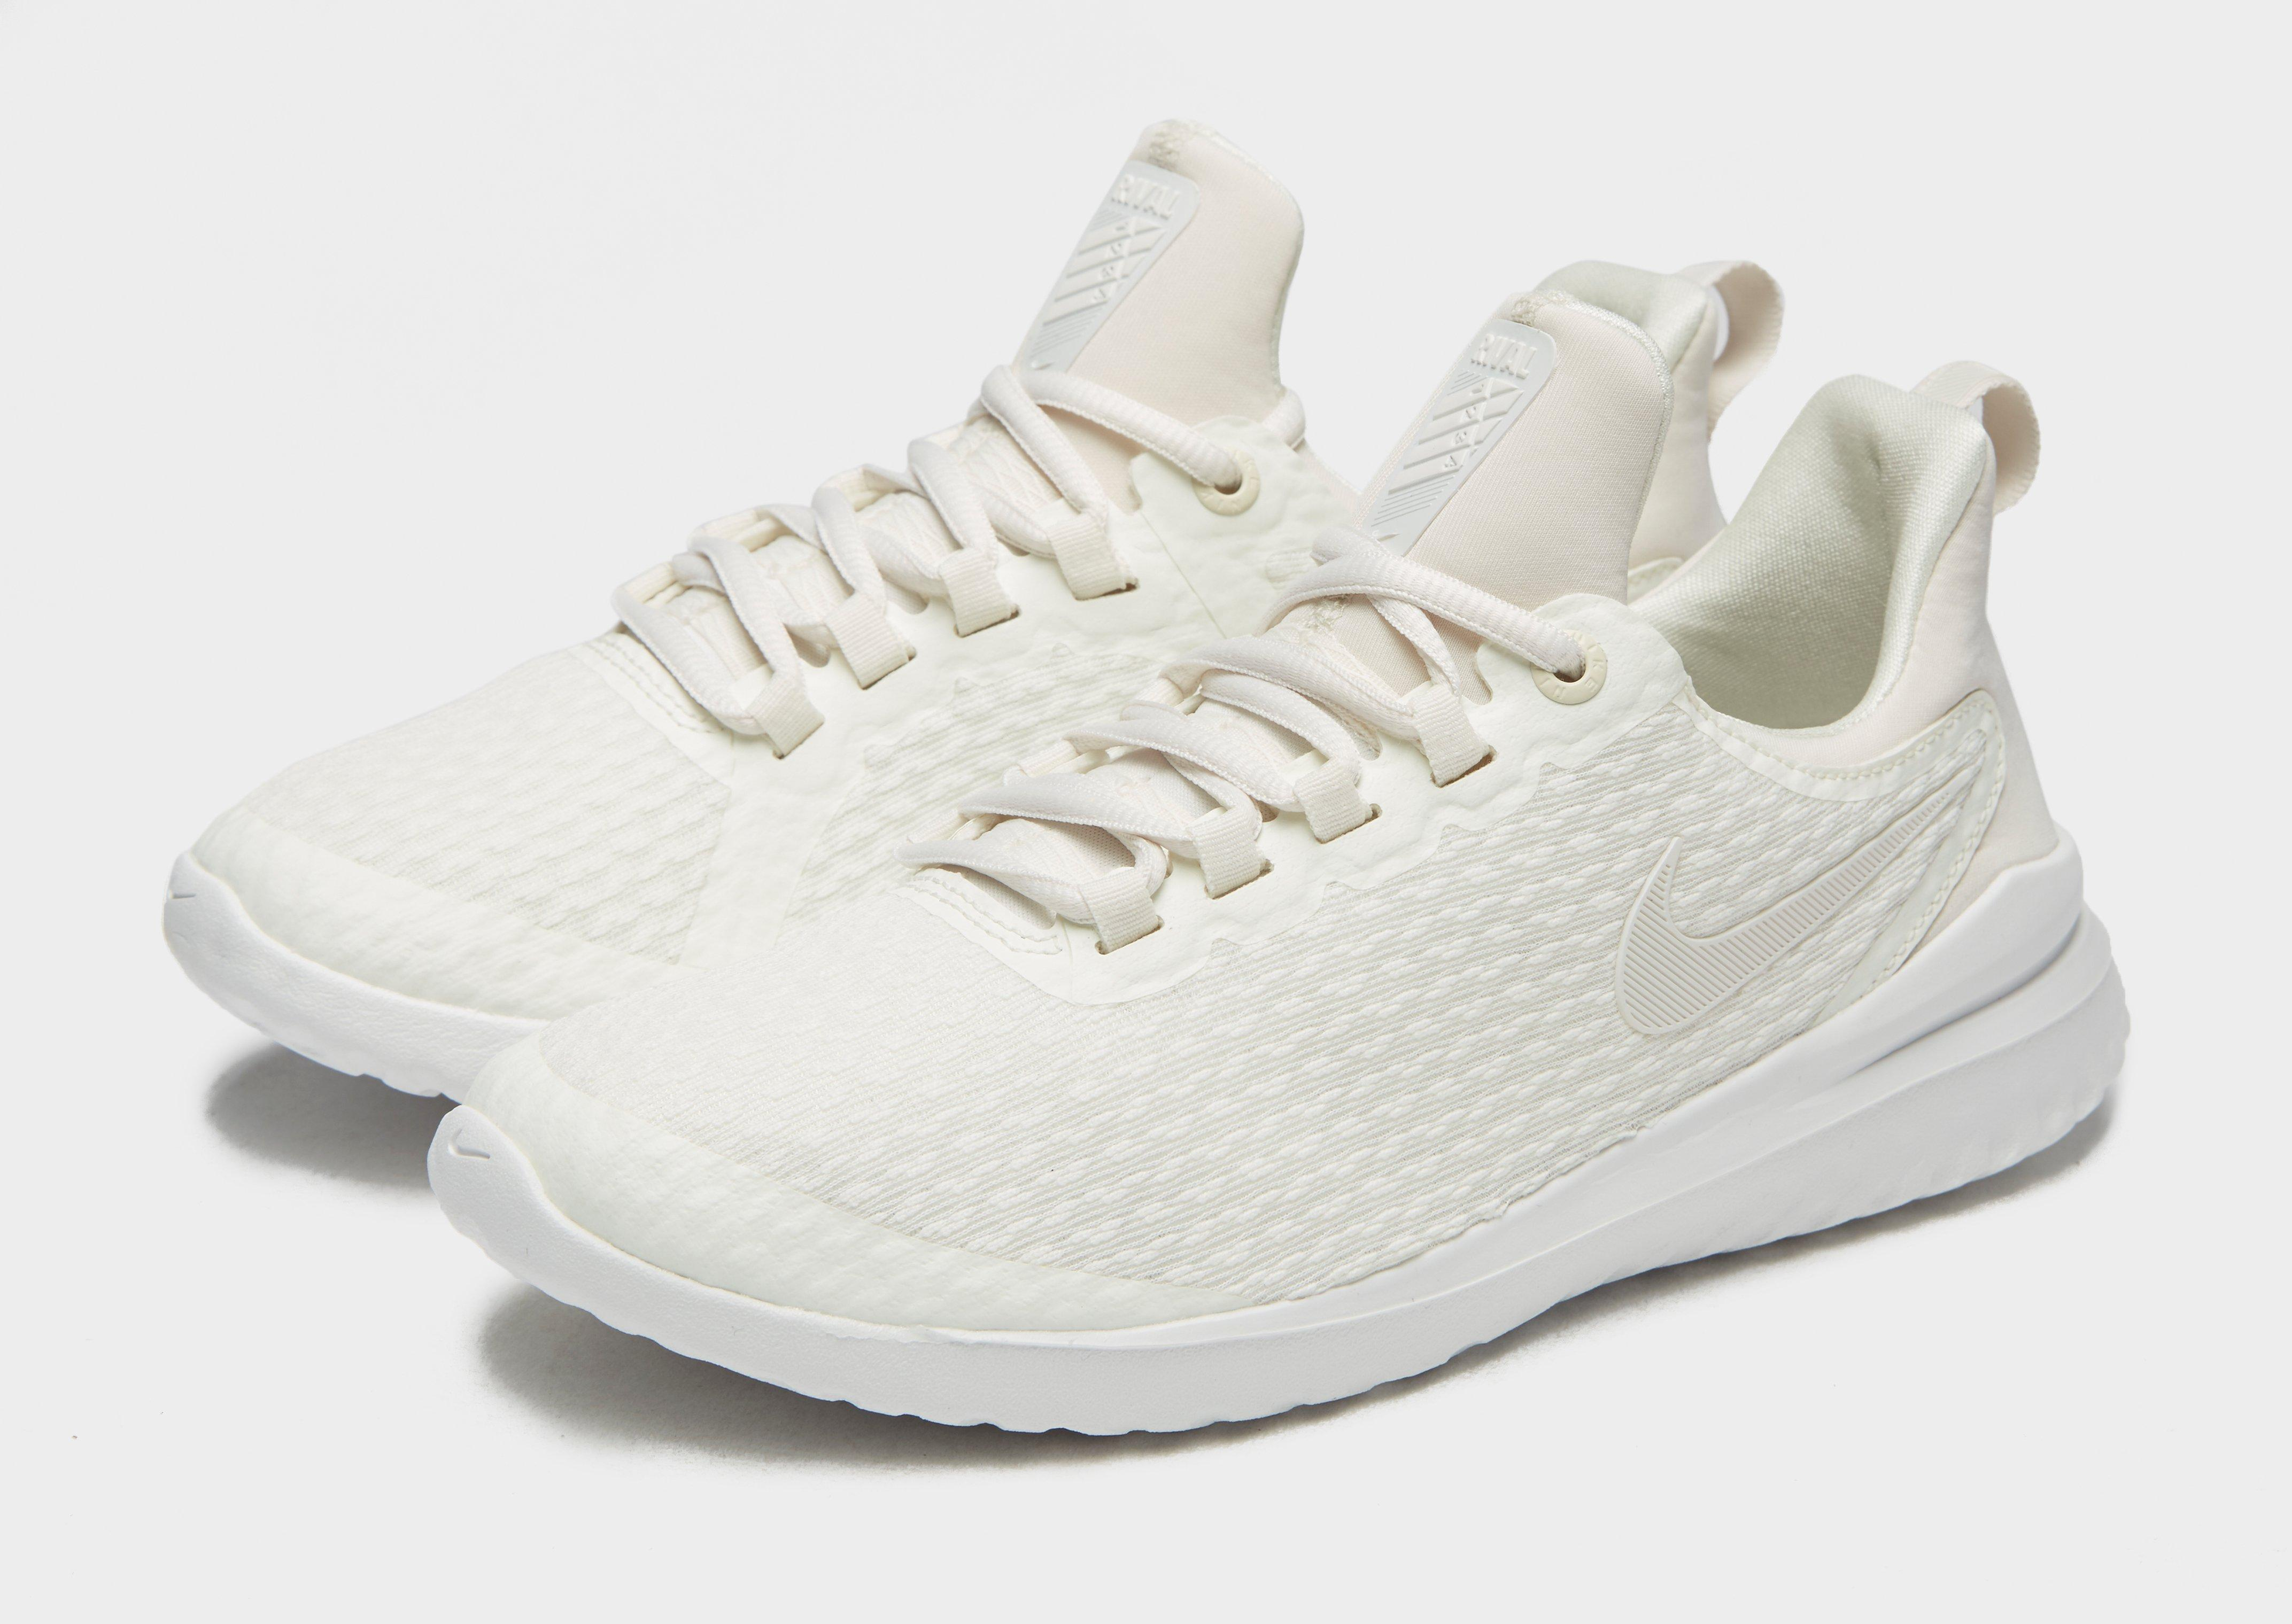 Nike Renew in Rival in Renew bianca Lyst cd984d - victorybridals.com 6fc4fd7504c